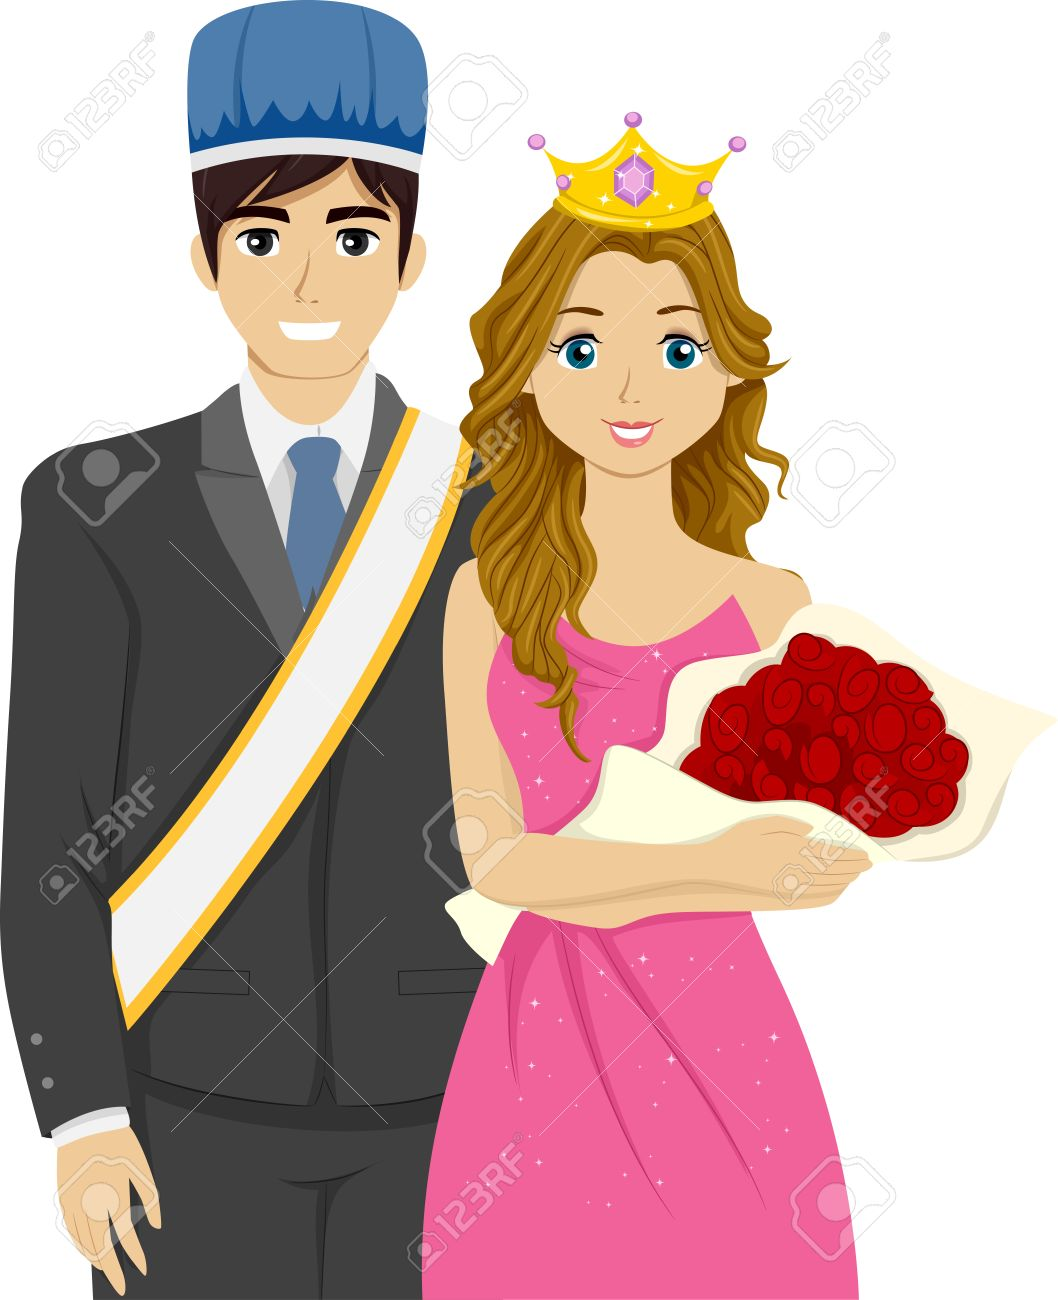 Image result for homecoming king and queen clipart